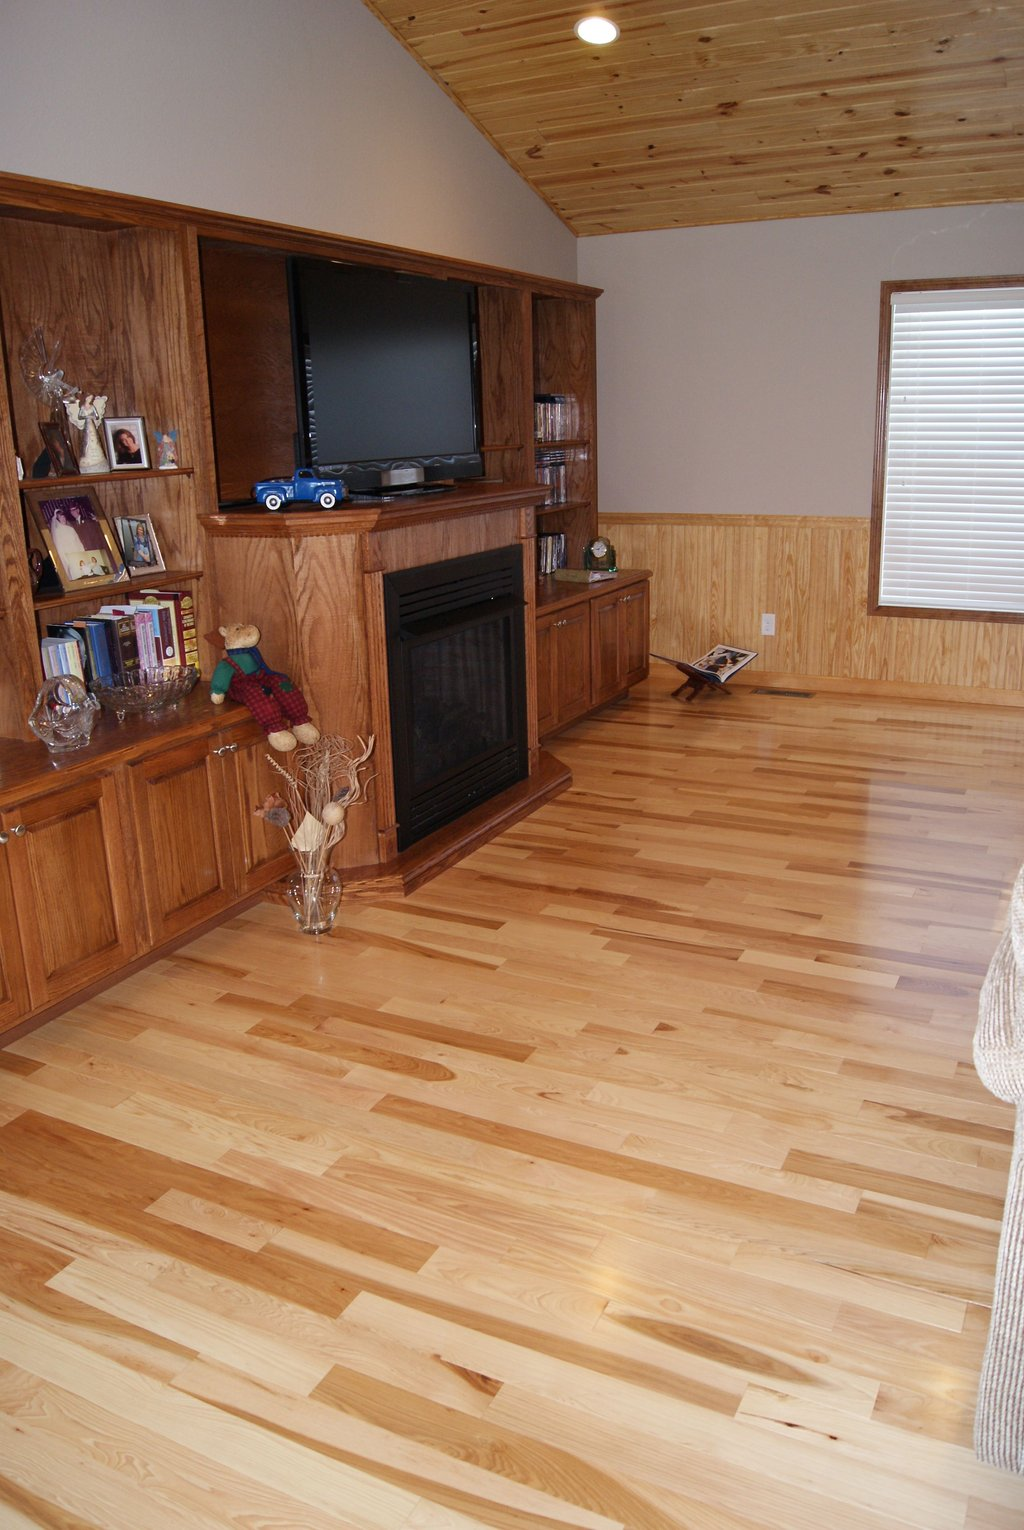 Hickory Common Hardwood Flooring Natural Tiger Wood Flooring For A Warmer Home